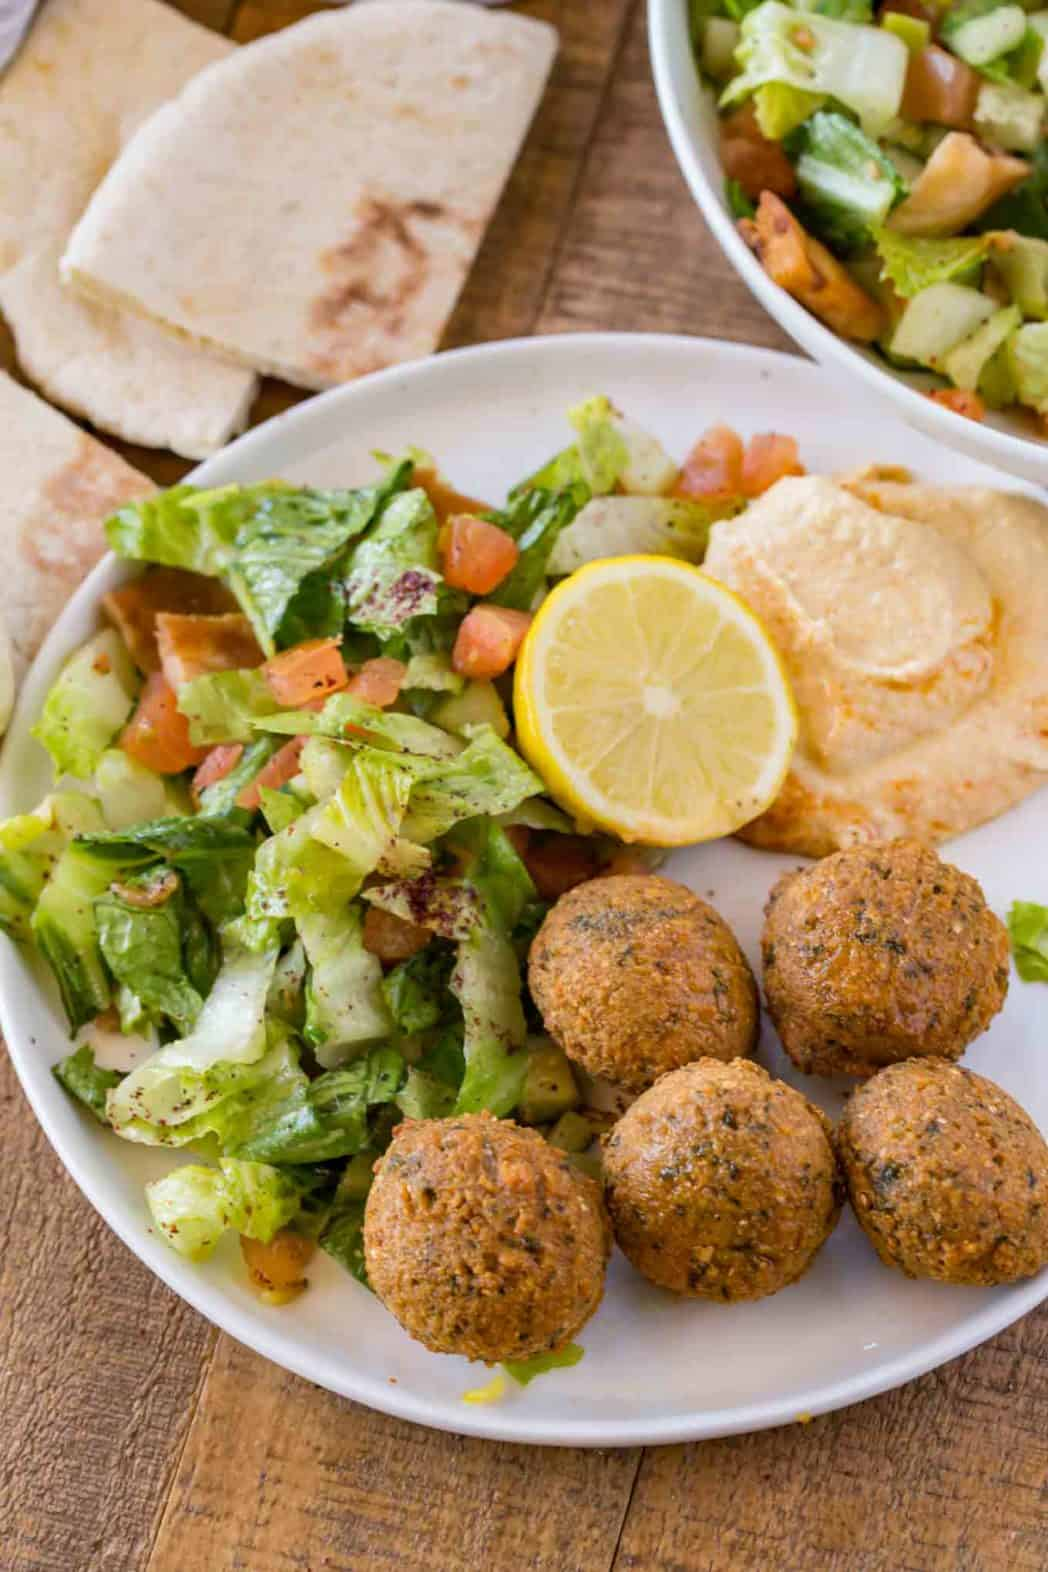 Falafel recipe with no canned beans served with hummus and salad